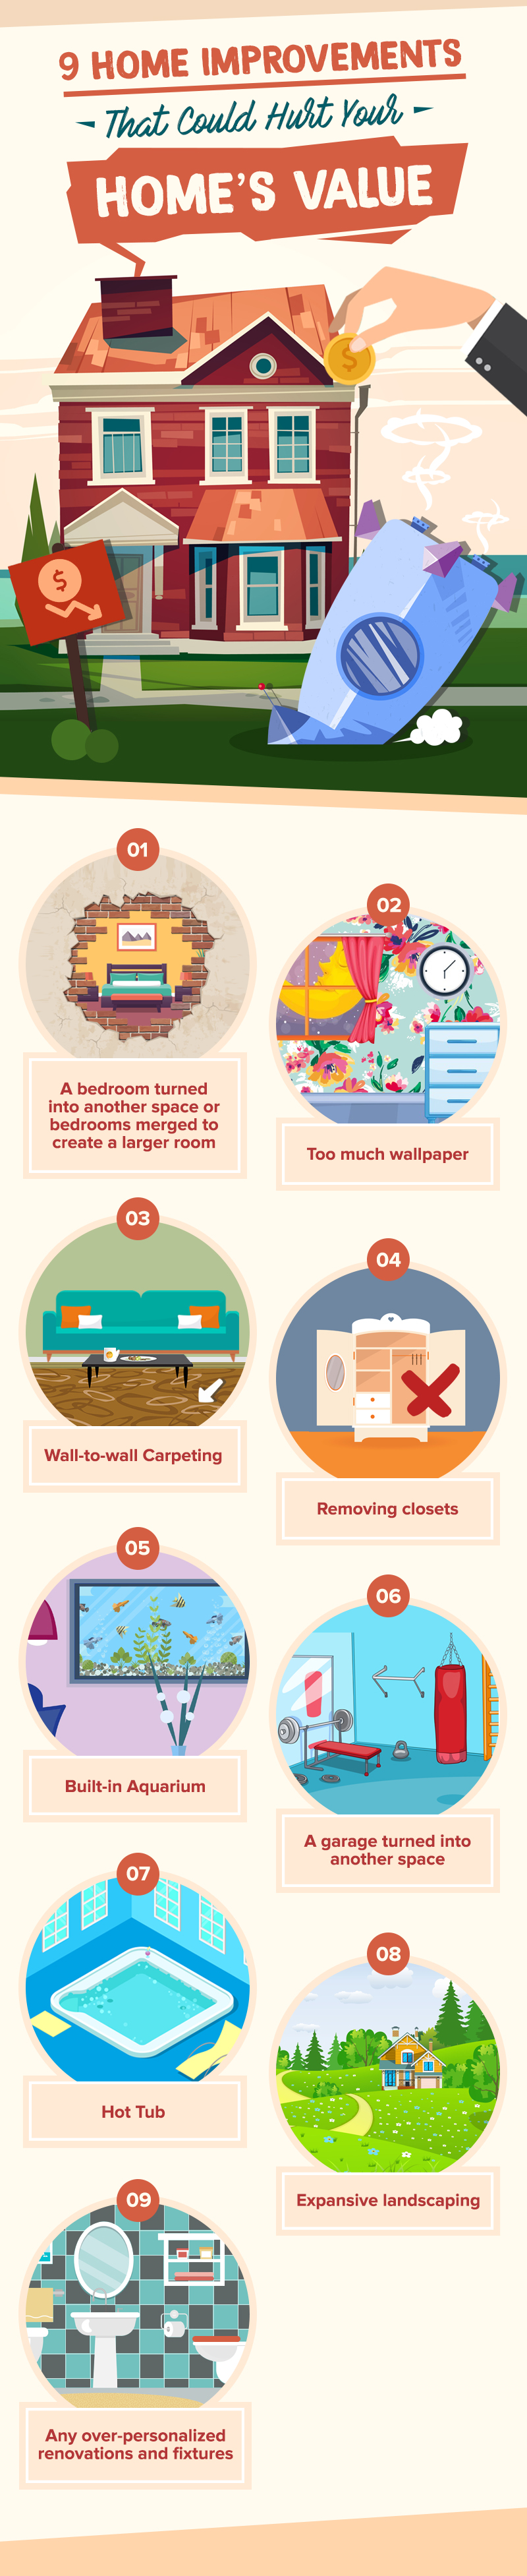 Sellers, Beware! These Home Improvements Could Hurt Your Home's Value